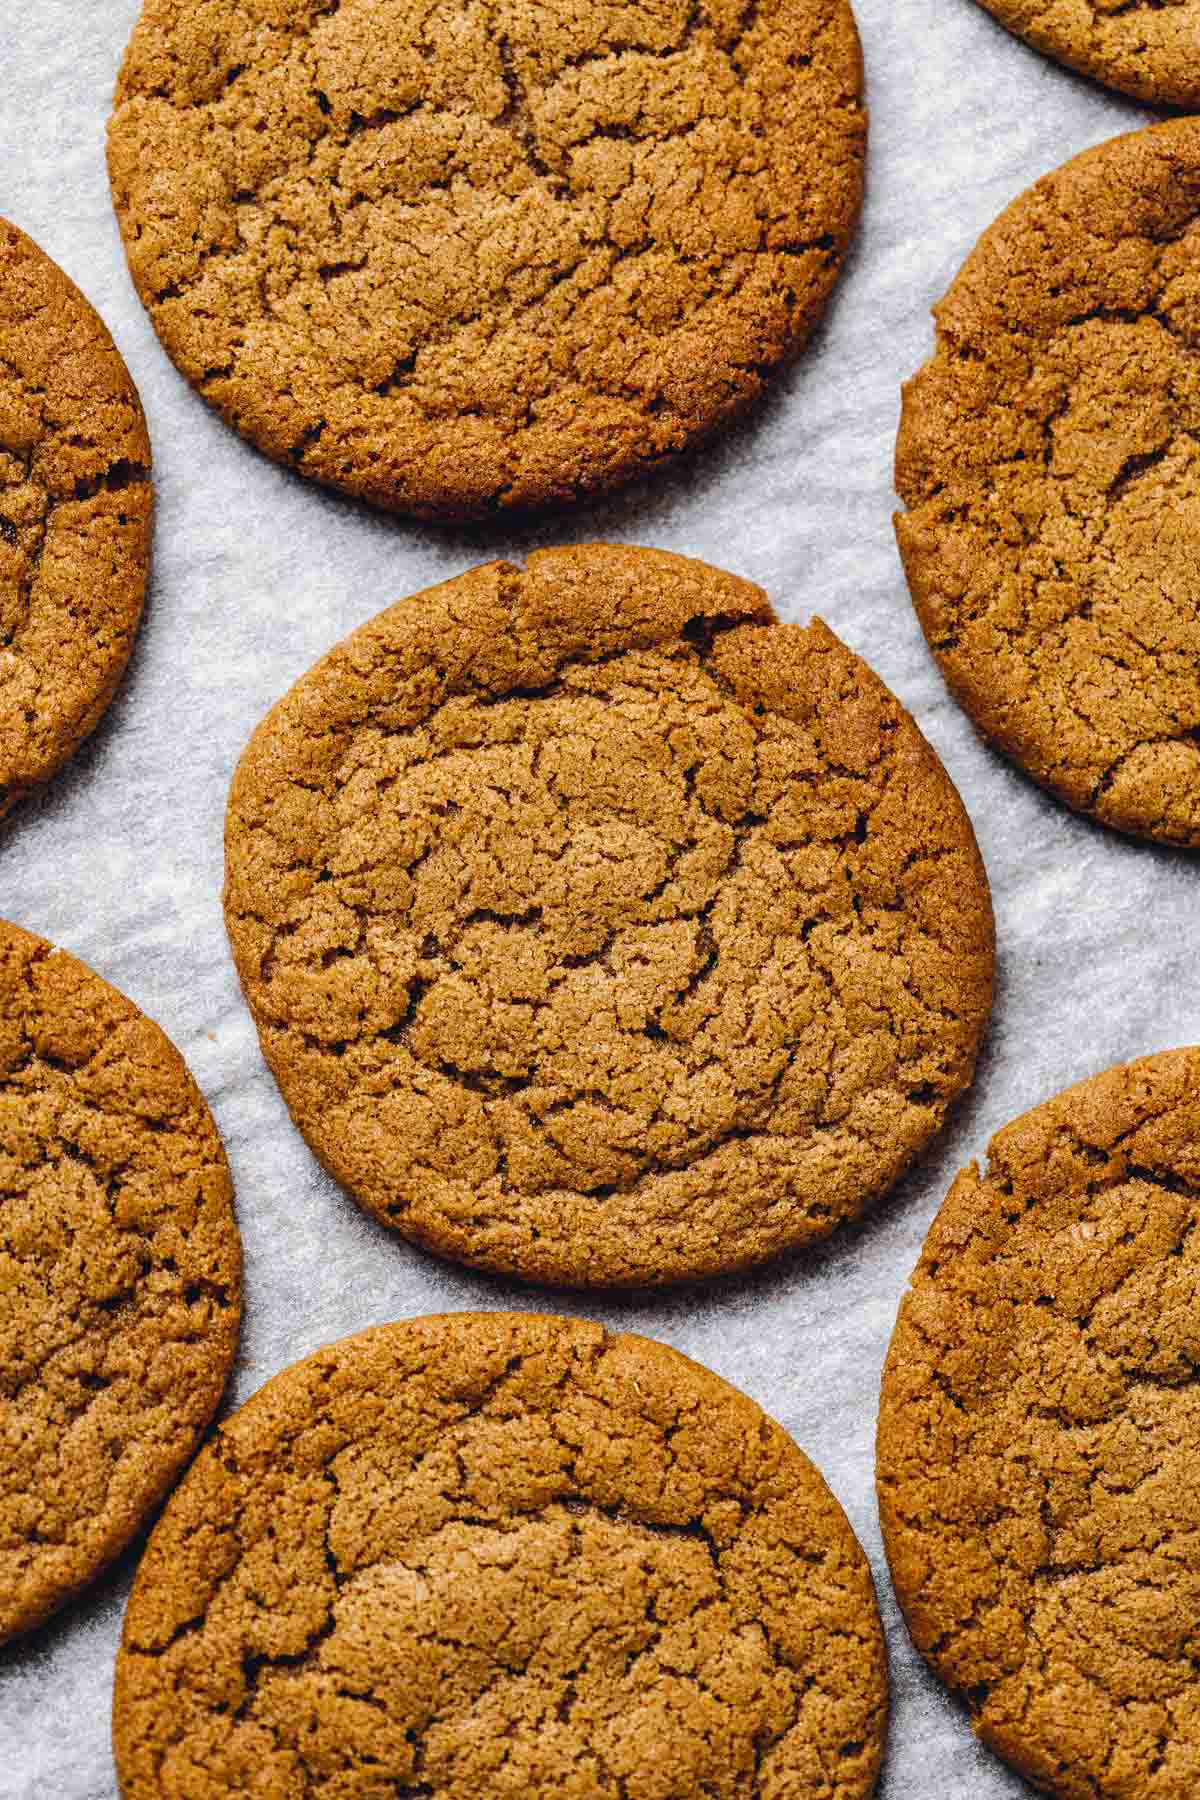 A close-up image of vegan ginger cookies on a sheet of white baking paper.